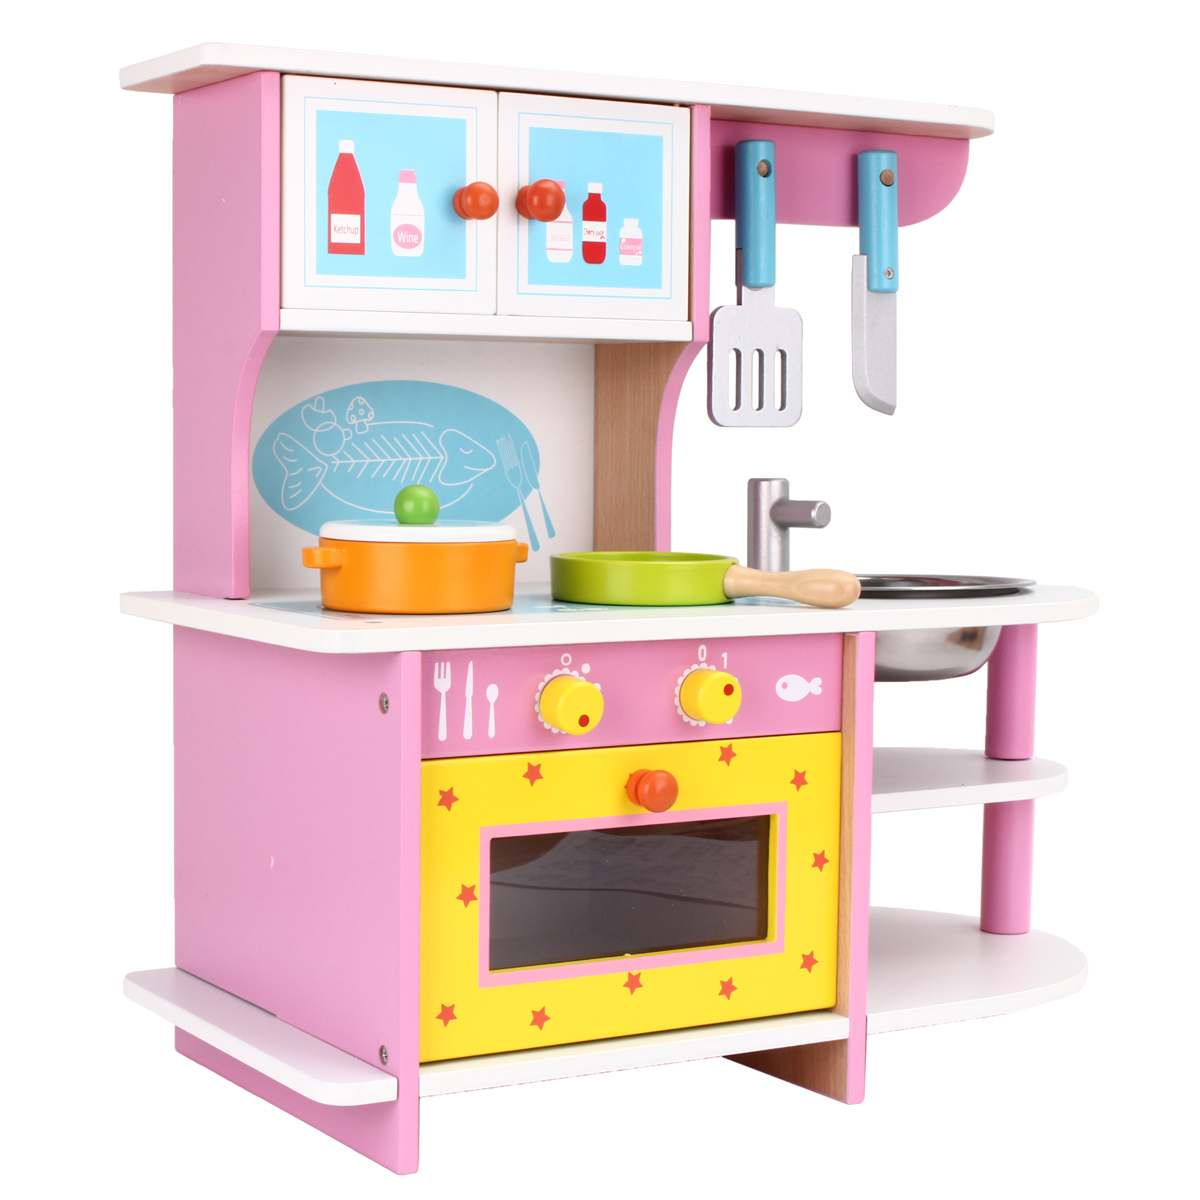 Wooden Kids Kitchen Toys Pretend Play Children Role Play Educational Toy Set Cooking Tools Kit Girls Birthday Christmas GiftsWooden Kids Kitchen Toys Pretend Play Children Role Play Educational Toy Set Cooking Tools Kit Girls Birthday Christmas Gifts